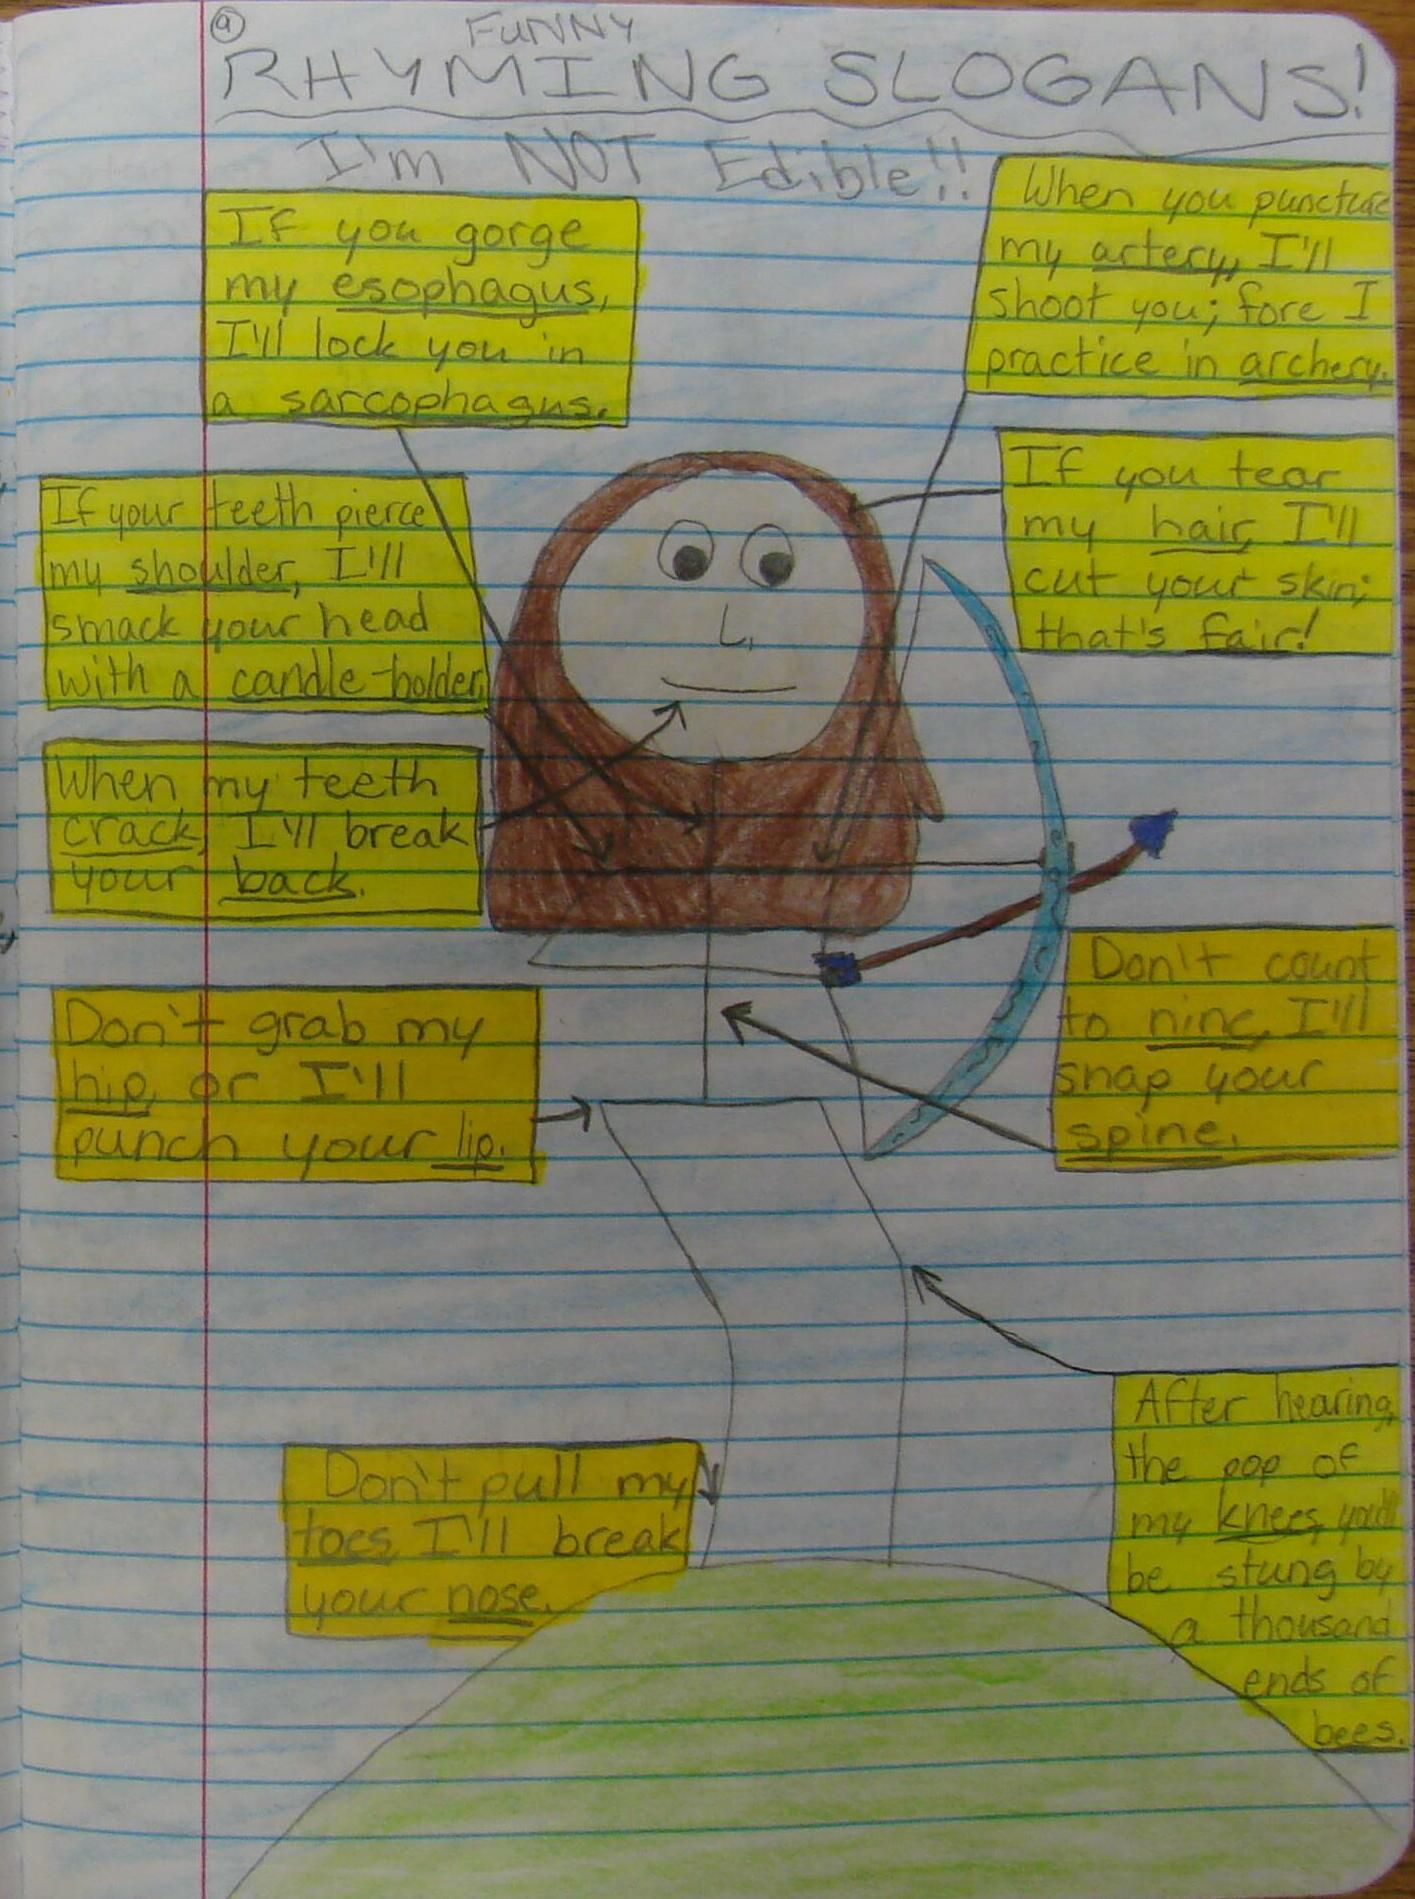 """The """"Center Square Lesson"""" on our March Bingo Card is called """"Rhyming Slogans,"""" and it starts with a funny page assigned in the notebook made up of body part-influenced rhyming couplets. 7th grader Keely based hers on Katniss Everdeen. Check out my writer's notebook resources online: http://corbettharrison.com/writers_notebooks.html"""